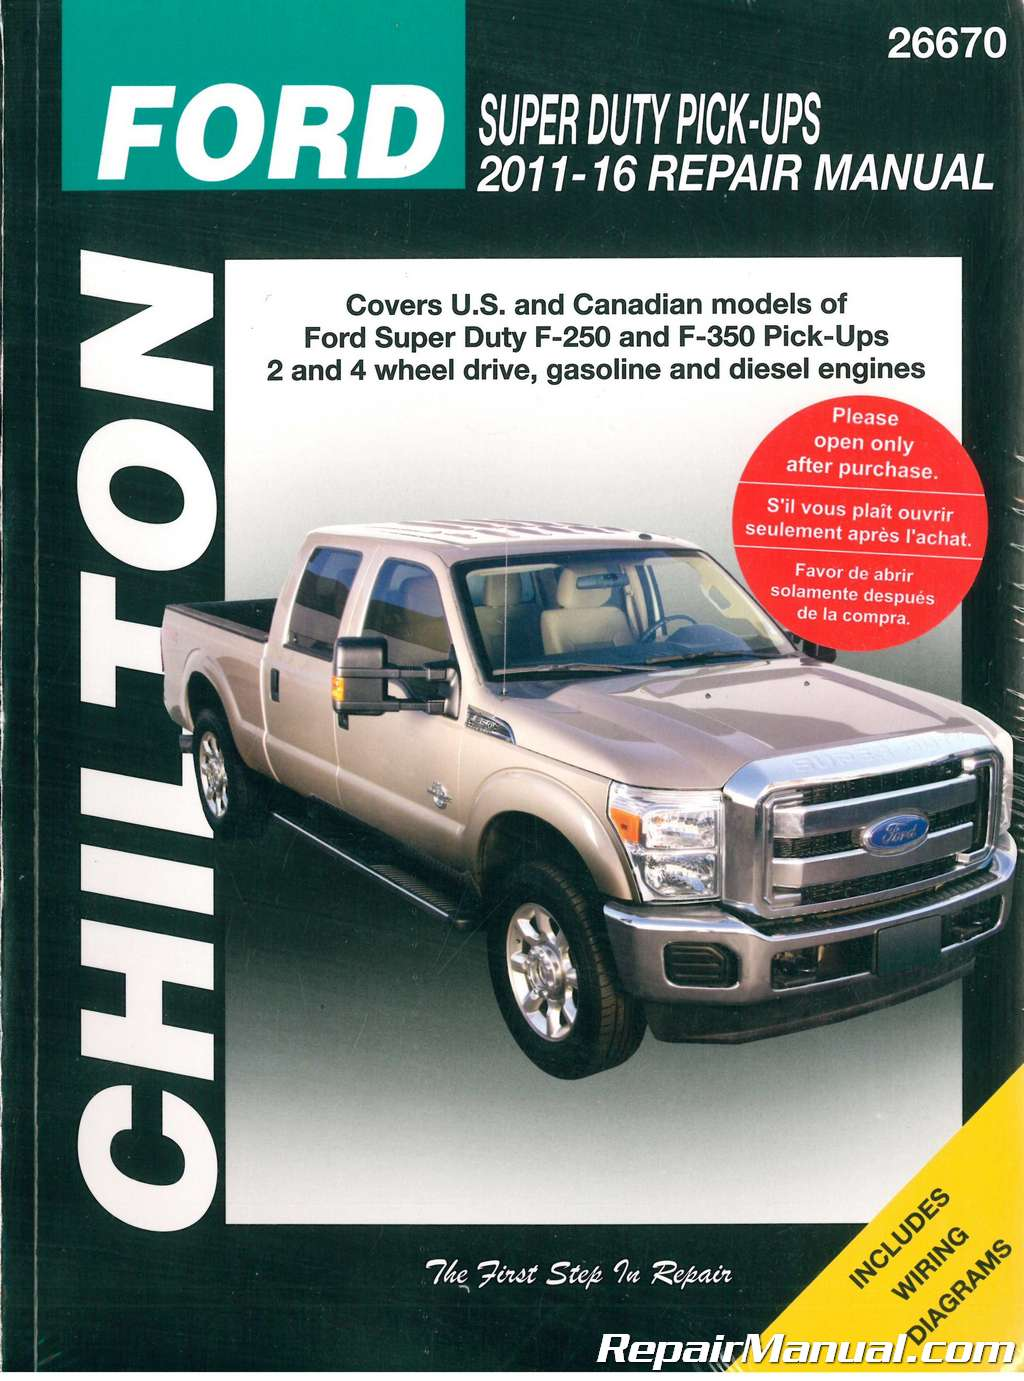 Chilton Wiring Diagrams 1979 Ford F 250 Voltage Regulator Diagram 1986 350 Super Duty Pick Ups 2011 2016 Repair Manual Rh Repairmanual Com Ignition Module